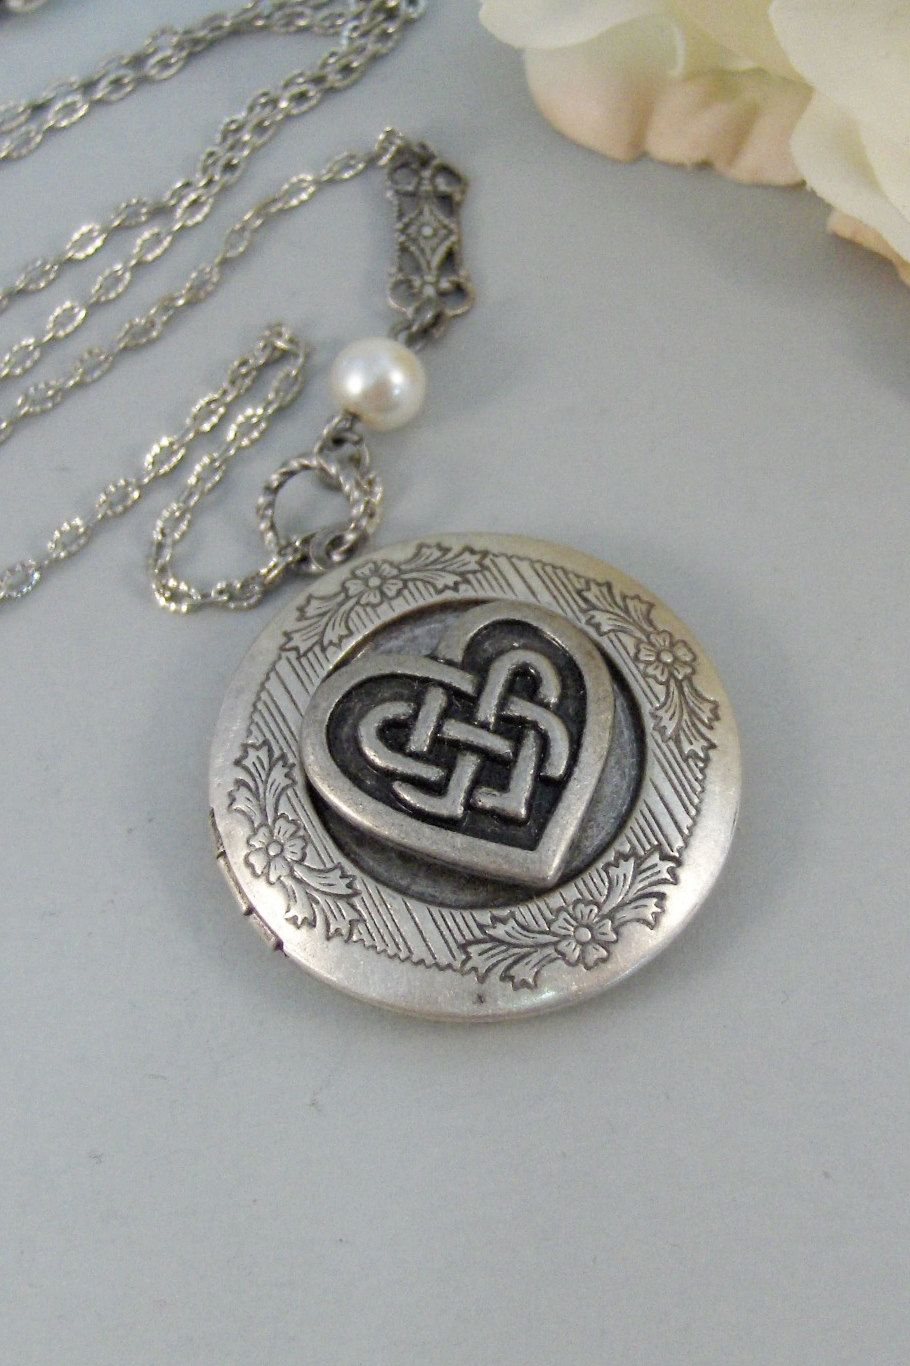 gorie c ola neckwear secrets jewellery celtic lockets locket pdt sil knot products